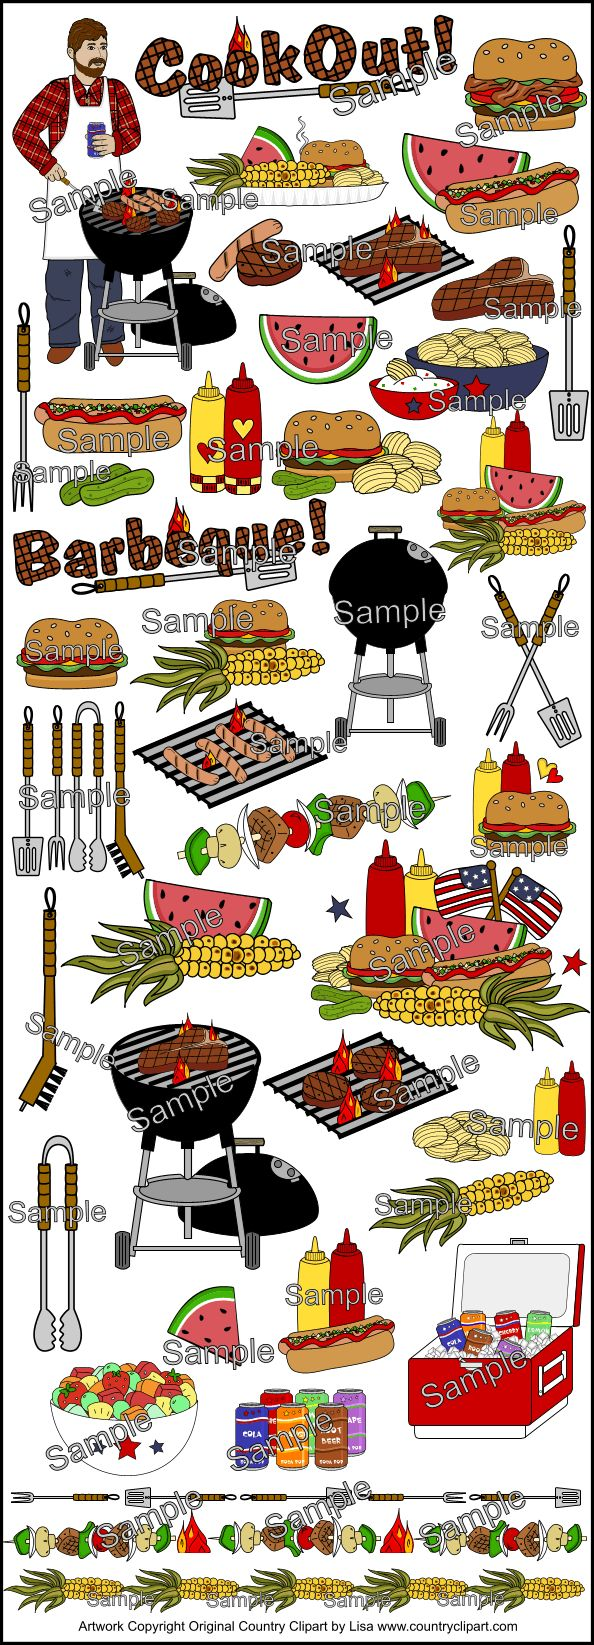 Country Cookout Barbeque Picnic Graphics and Clip Art Collection